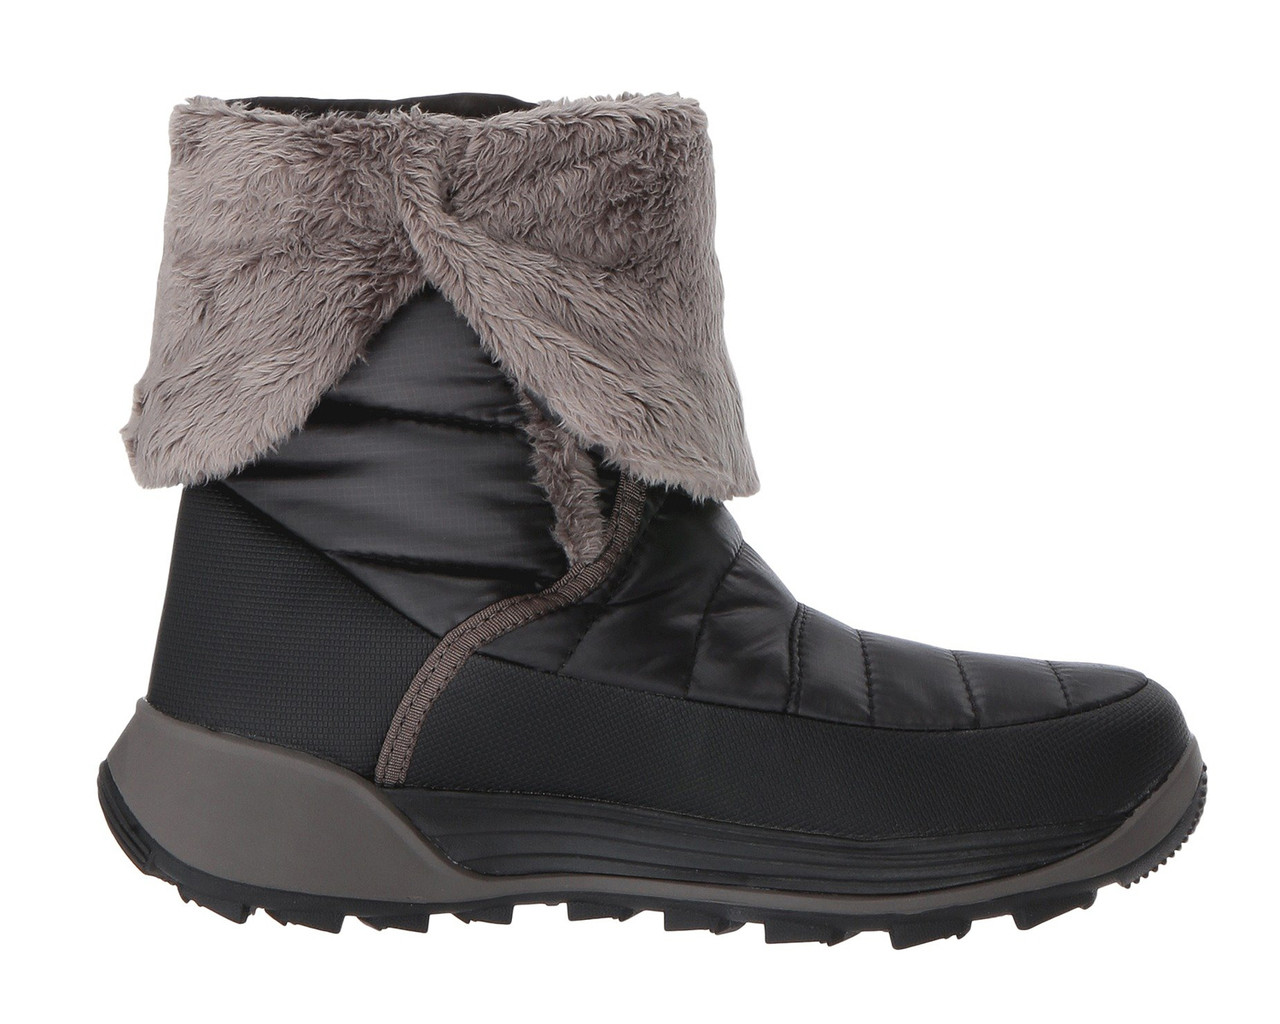 6be52dfe6 The North Face Girl's Amore II Boots #NF0A39UVWE3